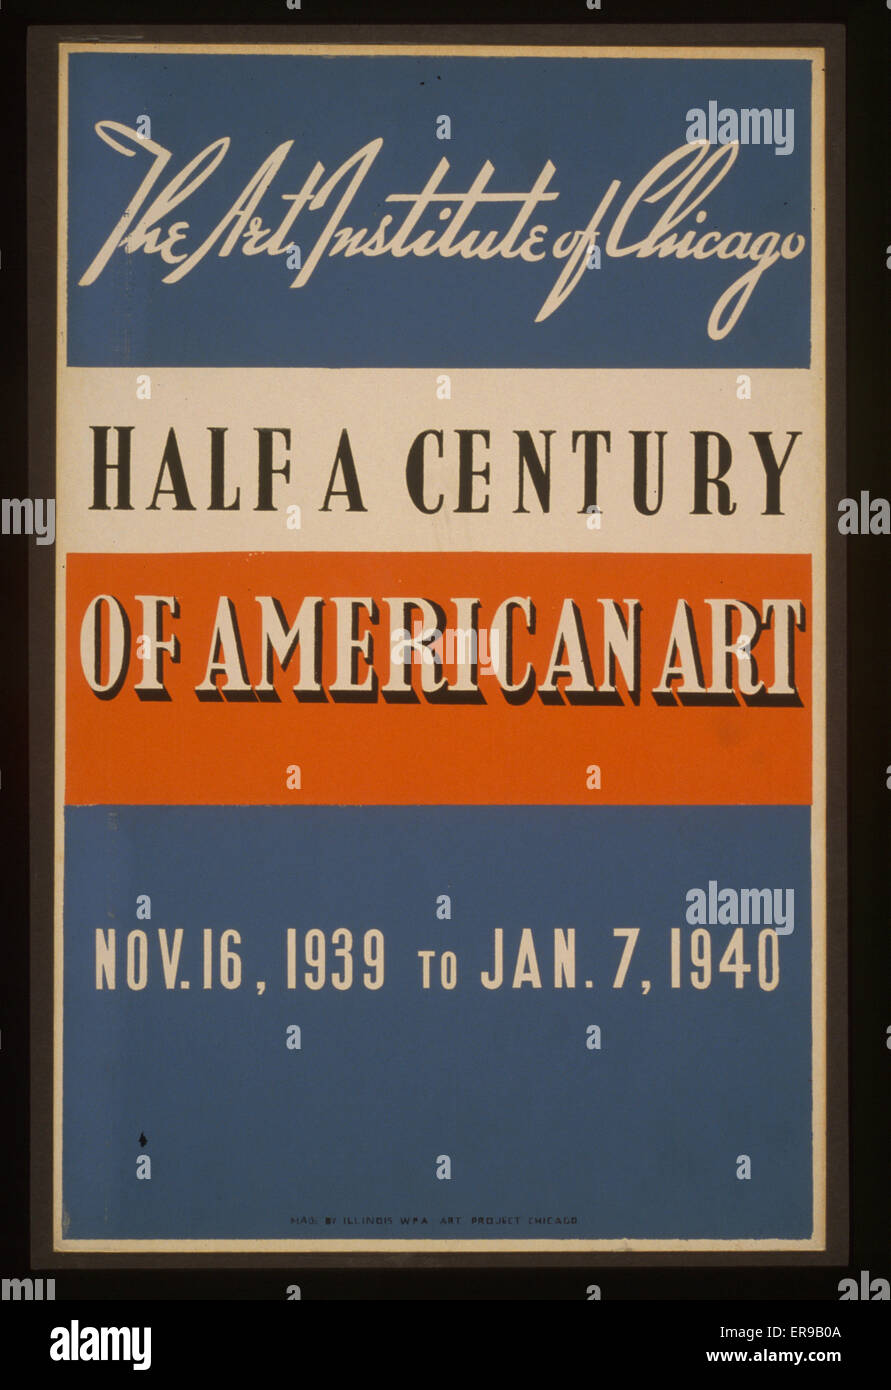 Half a century of American art The Art Institute of Chicago - Nov. 16, 1939 to Jan. 7, 1940. Poster for art exhibit - Stock Image